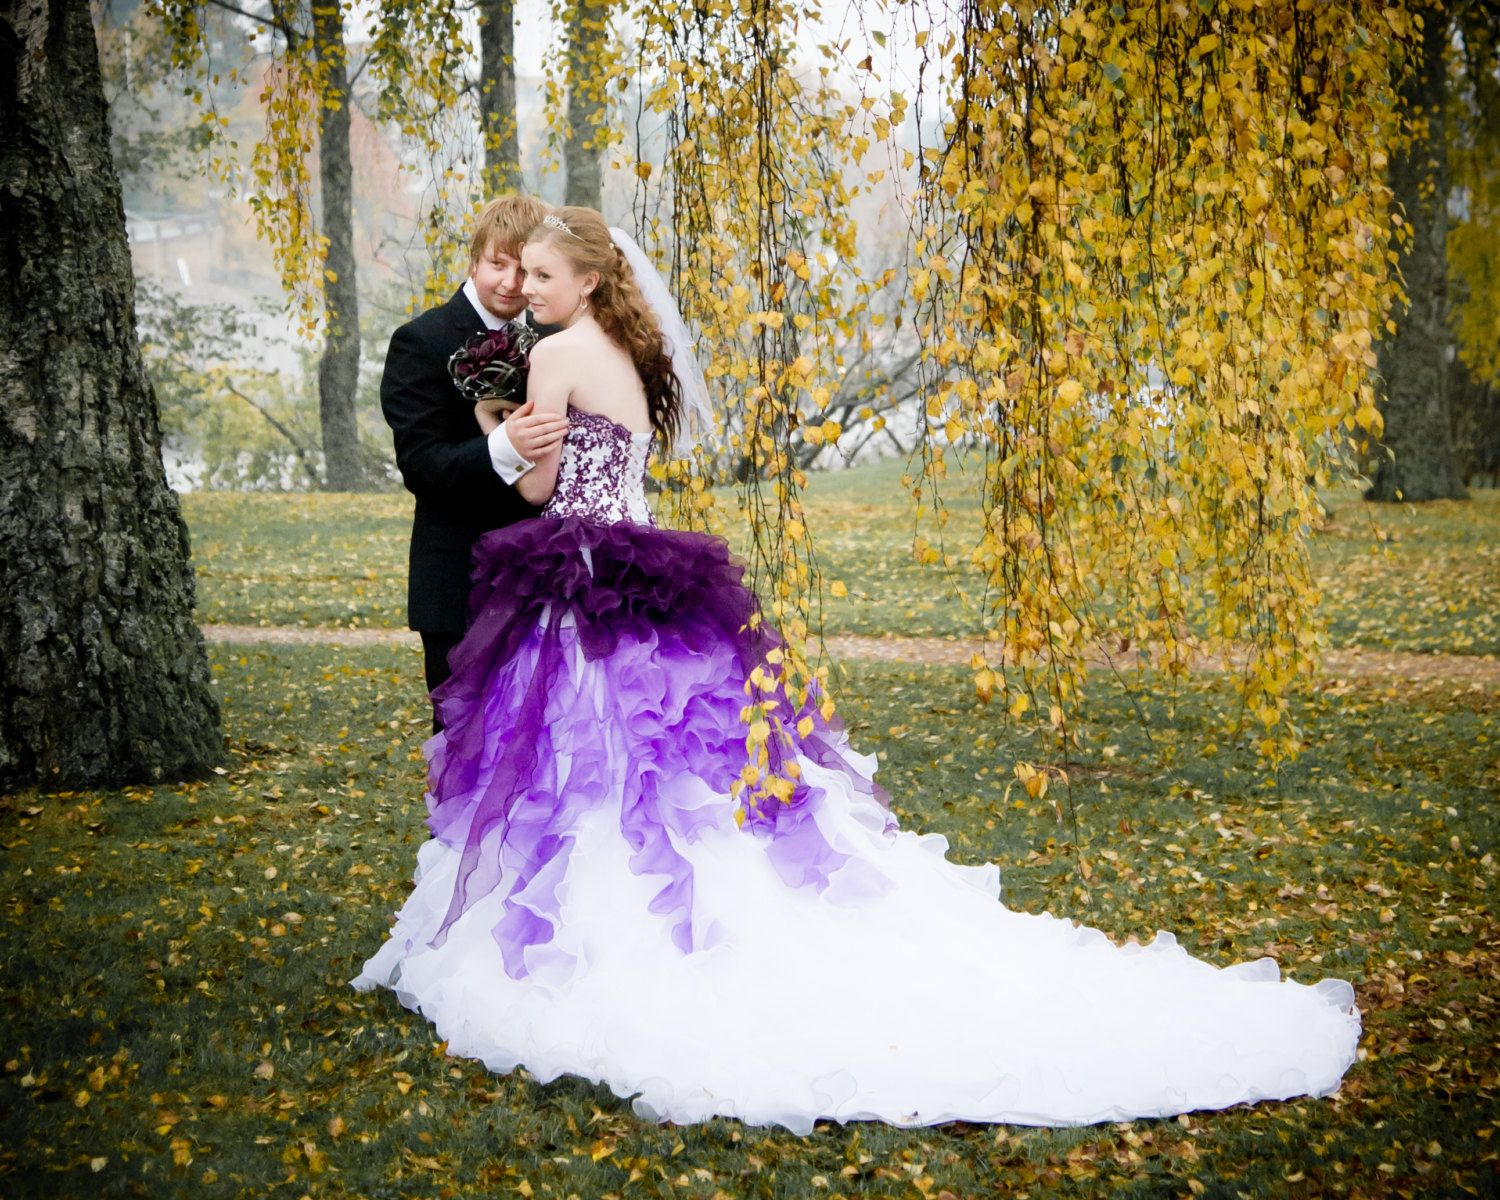 Purple And White Ombre Wedding Dress By Weddingdressfantasy Wedding Interest Ombre Wedding Dress Plum Wedding Dresses Purple Wedding Dress [ 1200 x 1500 Pixel ]